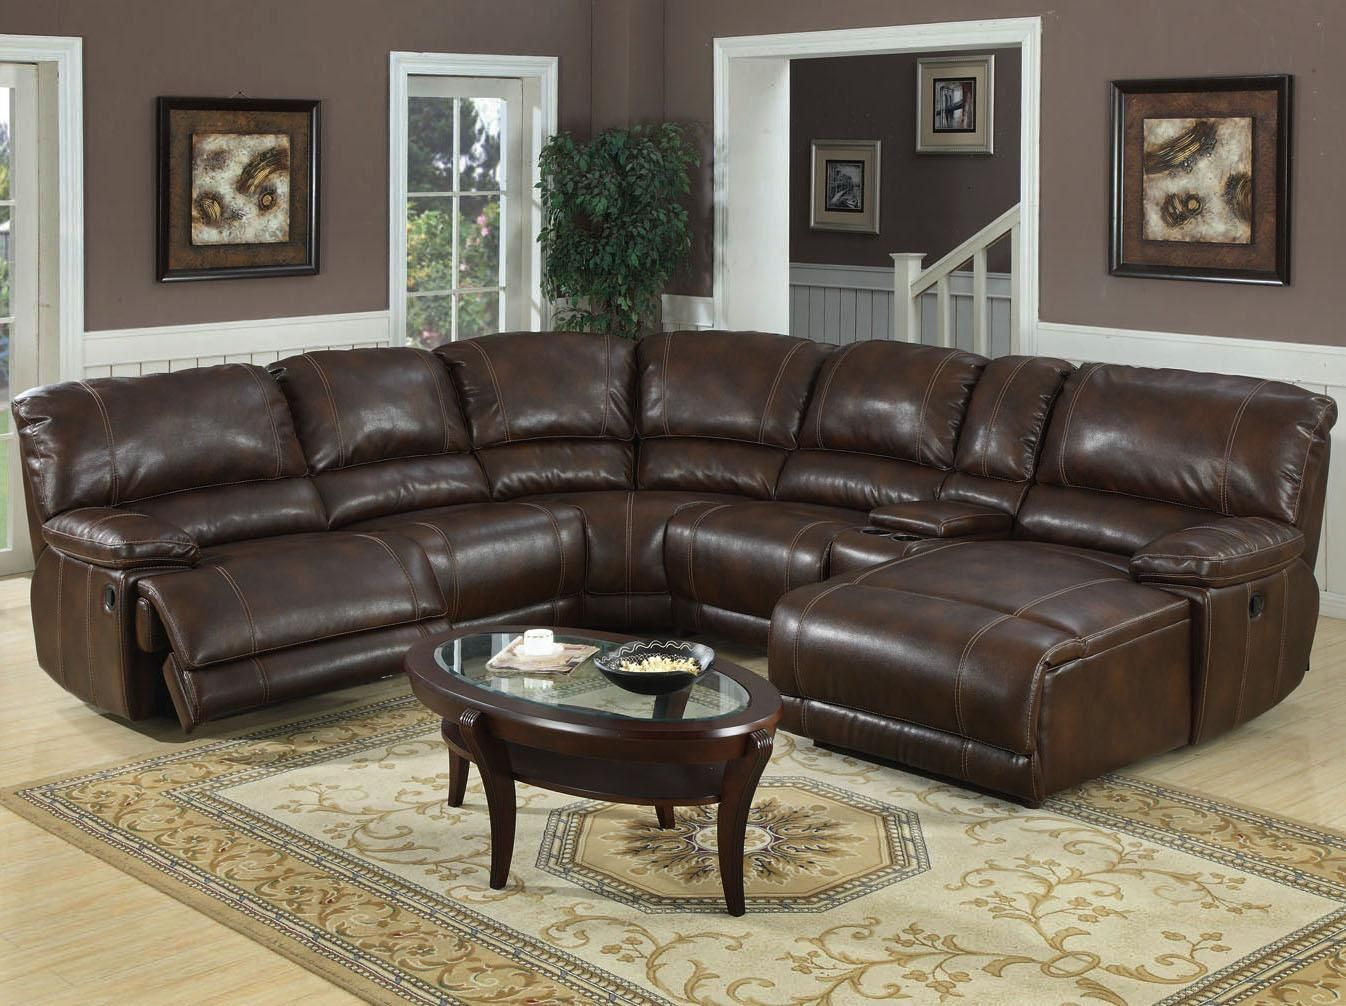 E Motion Furniture Jacob Reclining Chaise Sectional Orientation Right Hand Facing